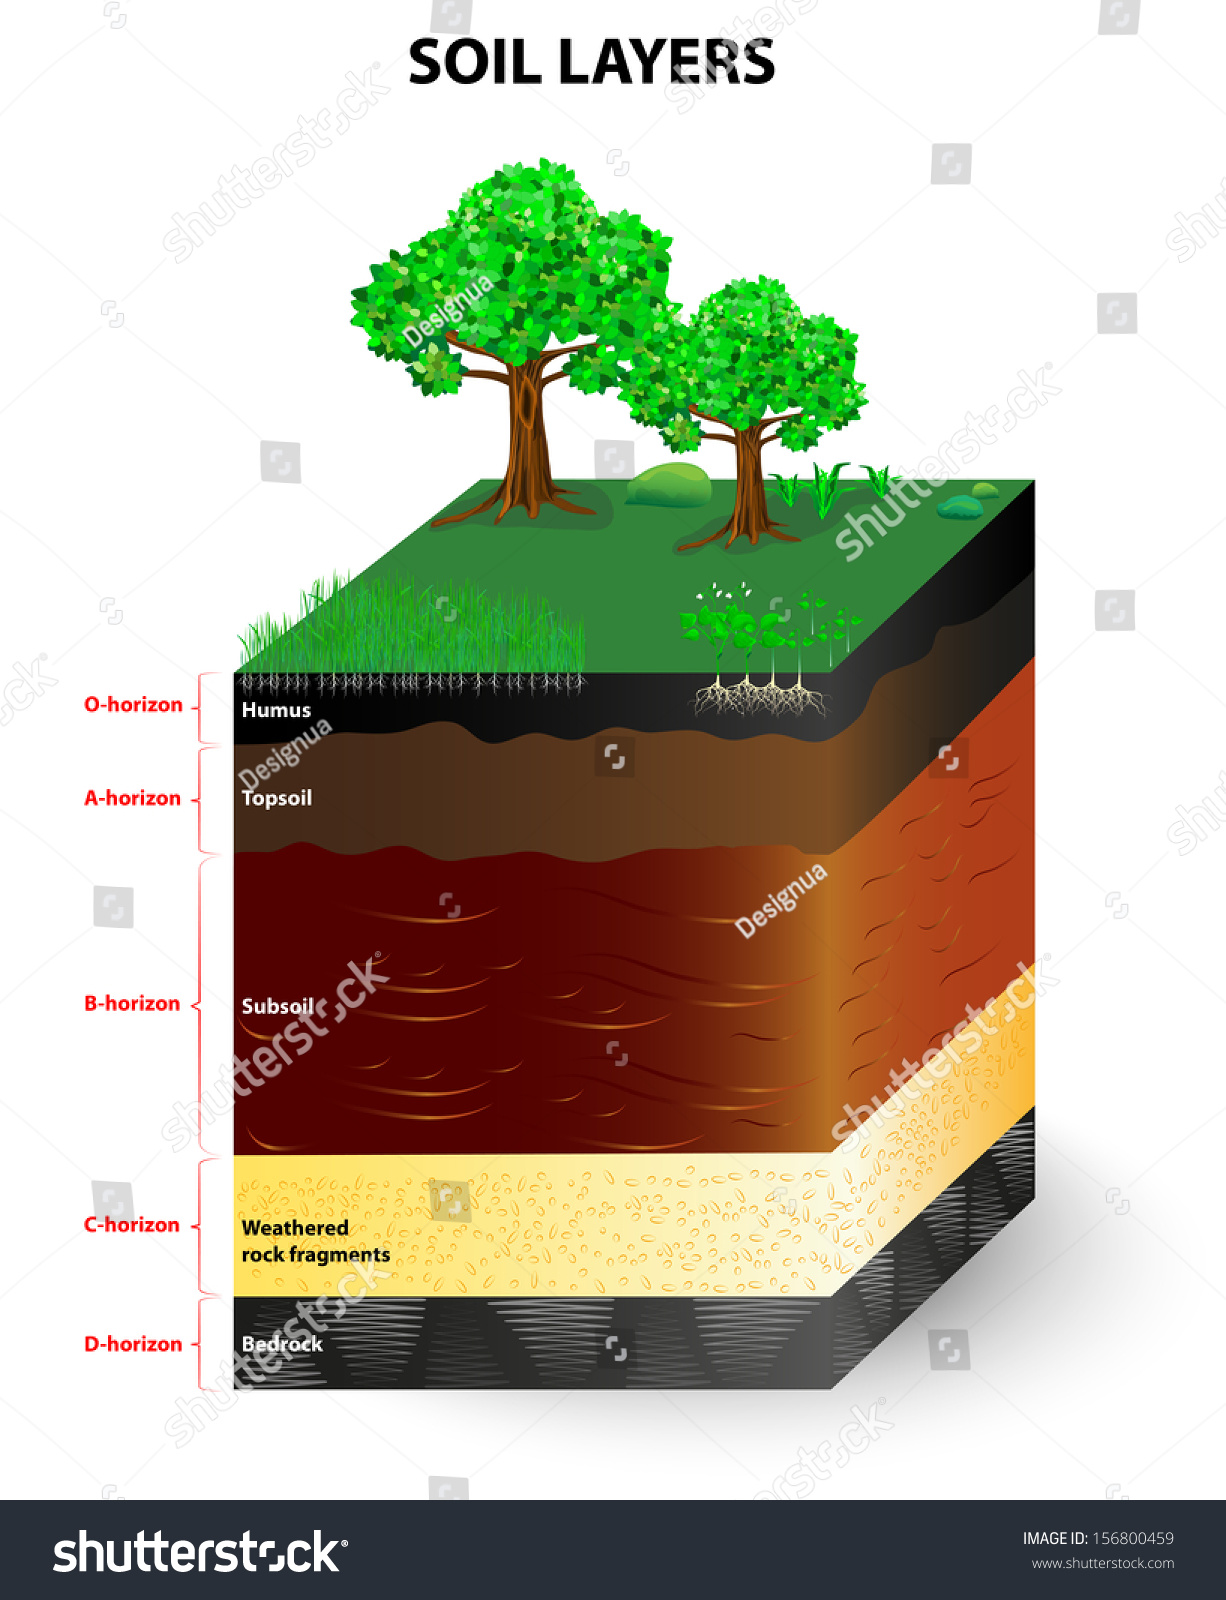 Soil formation soil horizons soil mixture stock vector for What is soil a mixture of